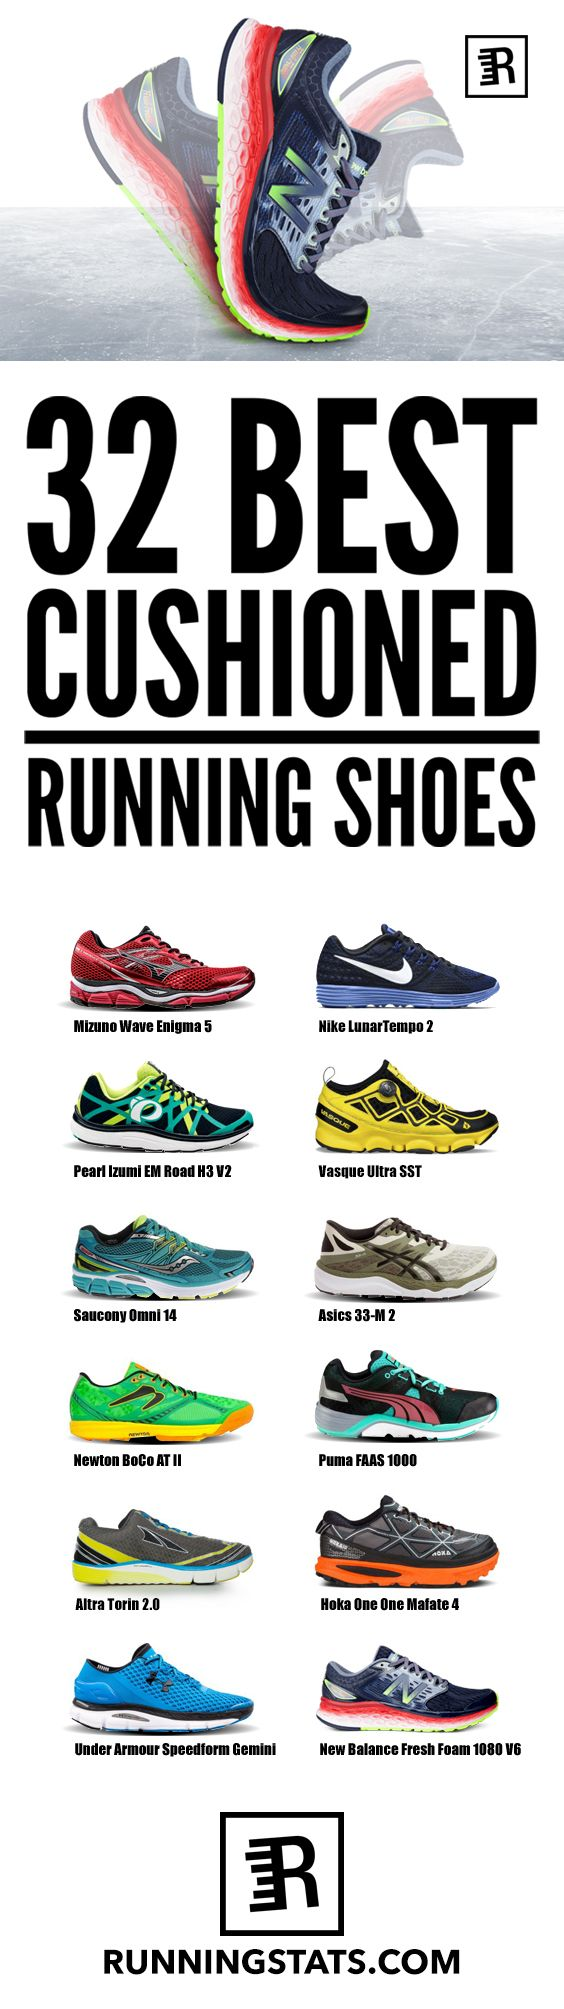 Lots of runners swear by the pain-relieving effects of cushioned running shoes. From Nike to Hoka One One, Maximalist running shoes are here to stay..Want to know how to choose the right shoes? Here are 32 of the best cushioned running shoes you can find out there for men and women